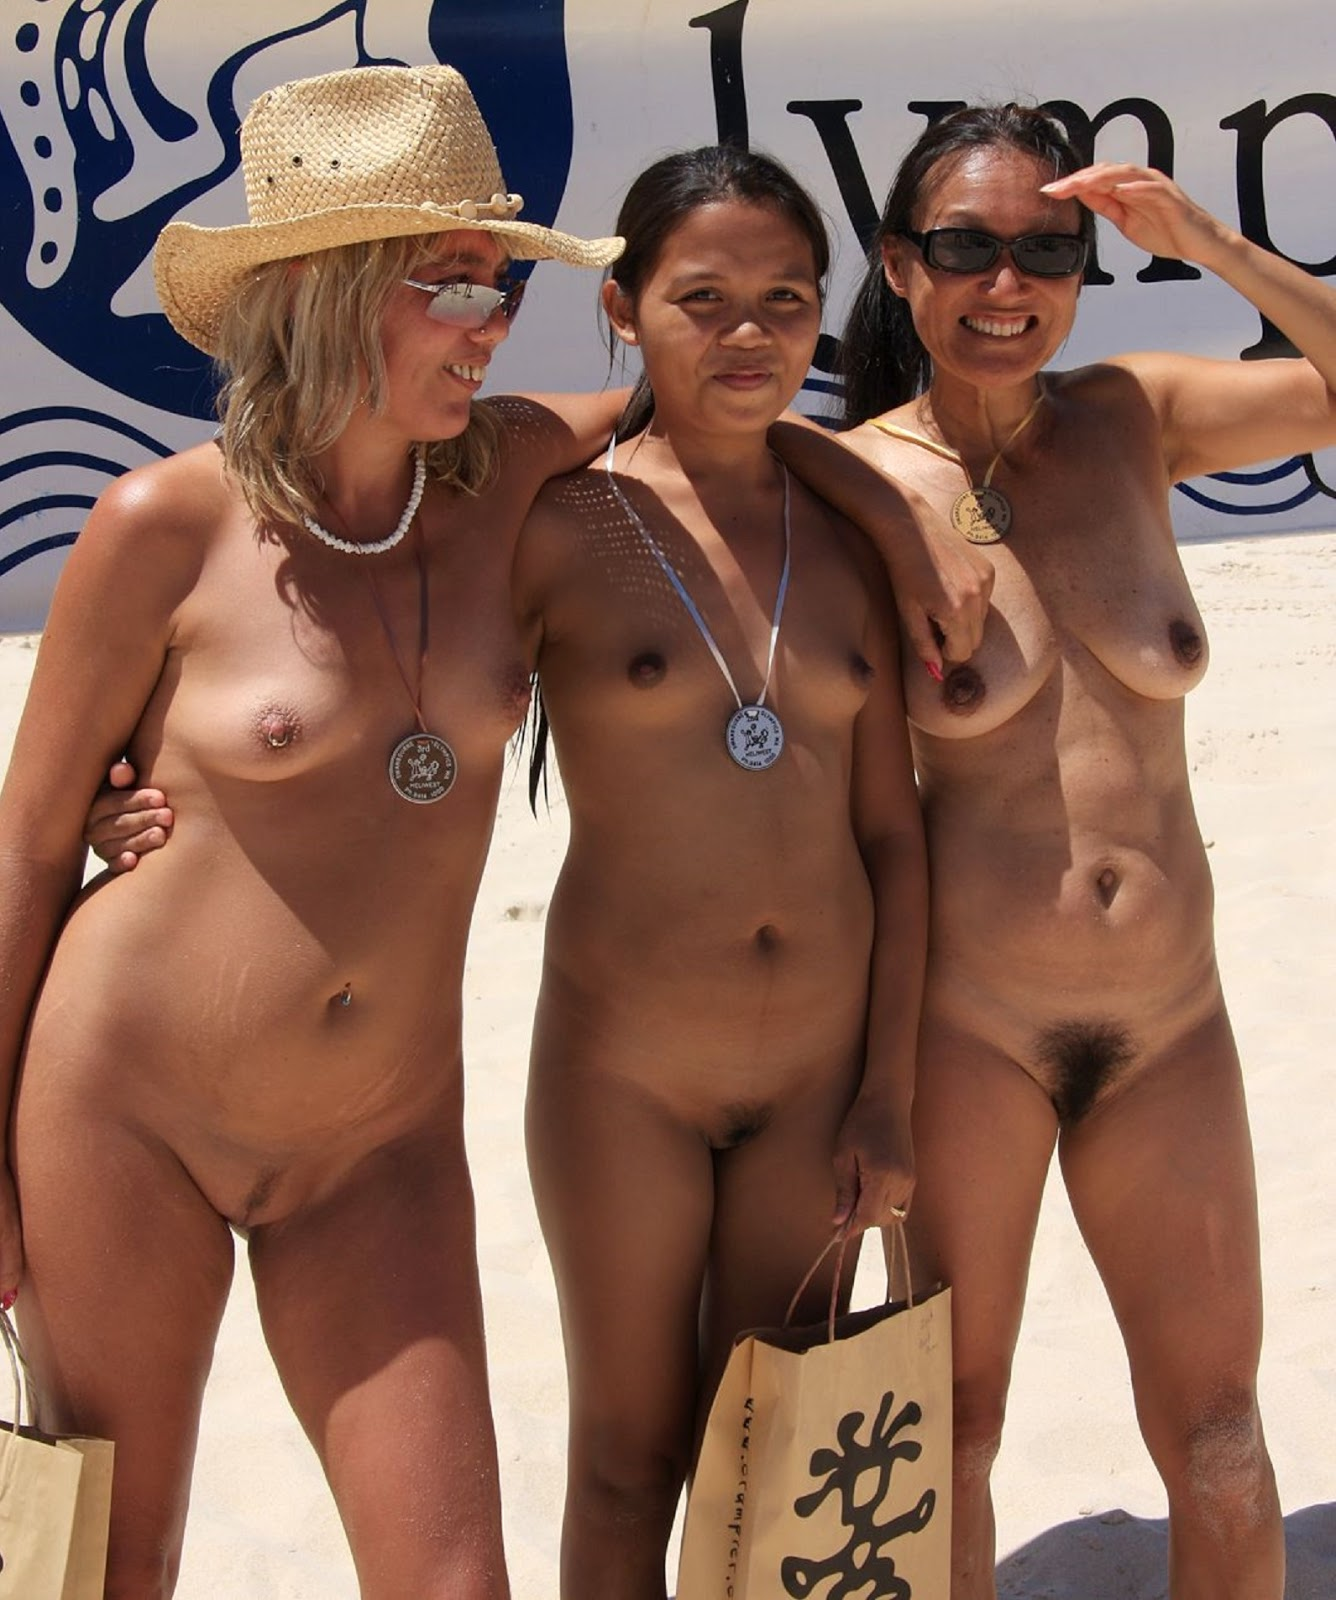 Public Nudity Project Nude Beach Olympics 2009 -6308